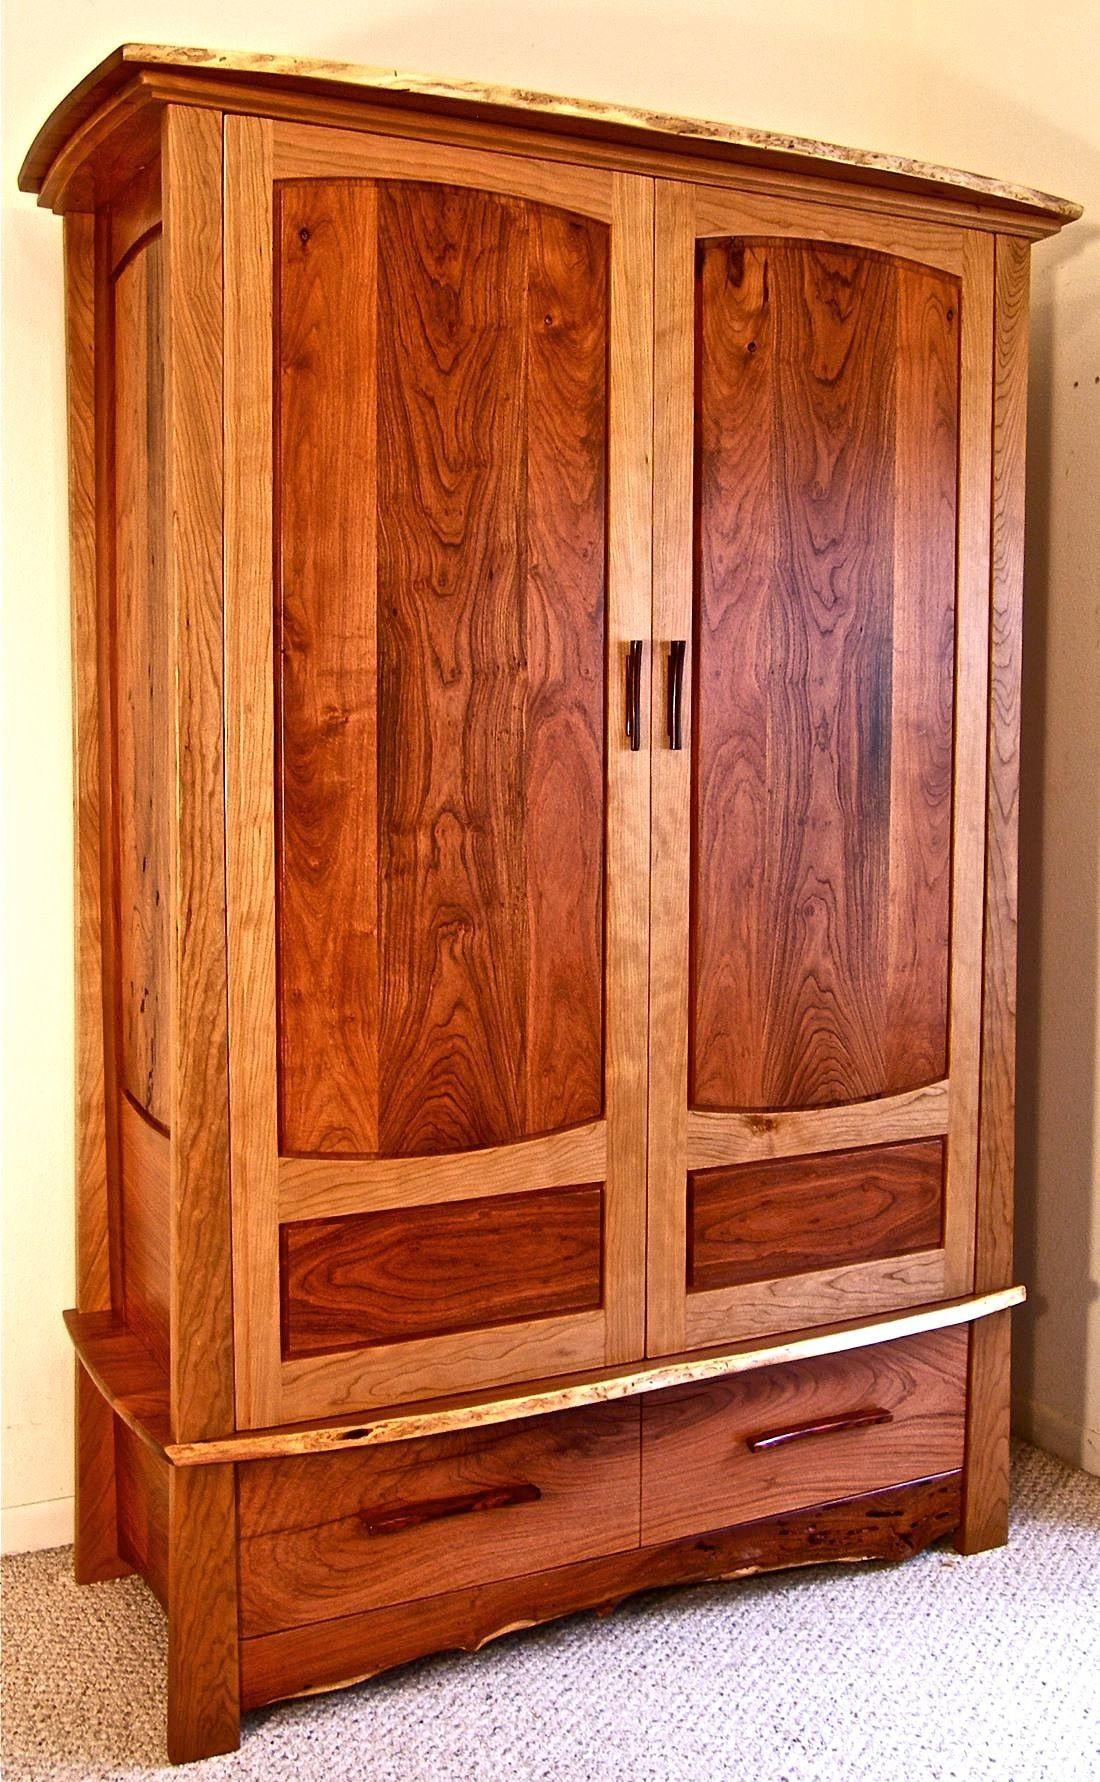 Find this Pin and more on The Art Of Handmade Furniture. - Custom Handmade Armoire In Texas Mesquite & Cherry The Art Of